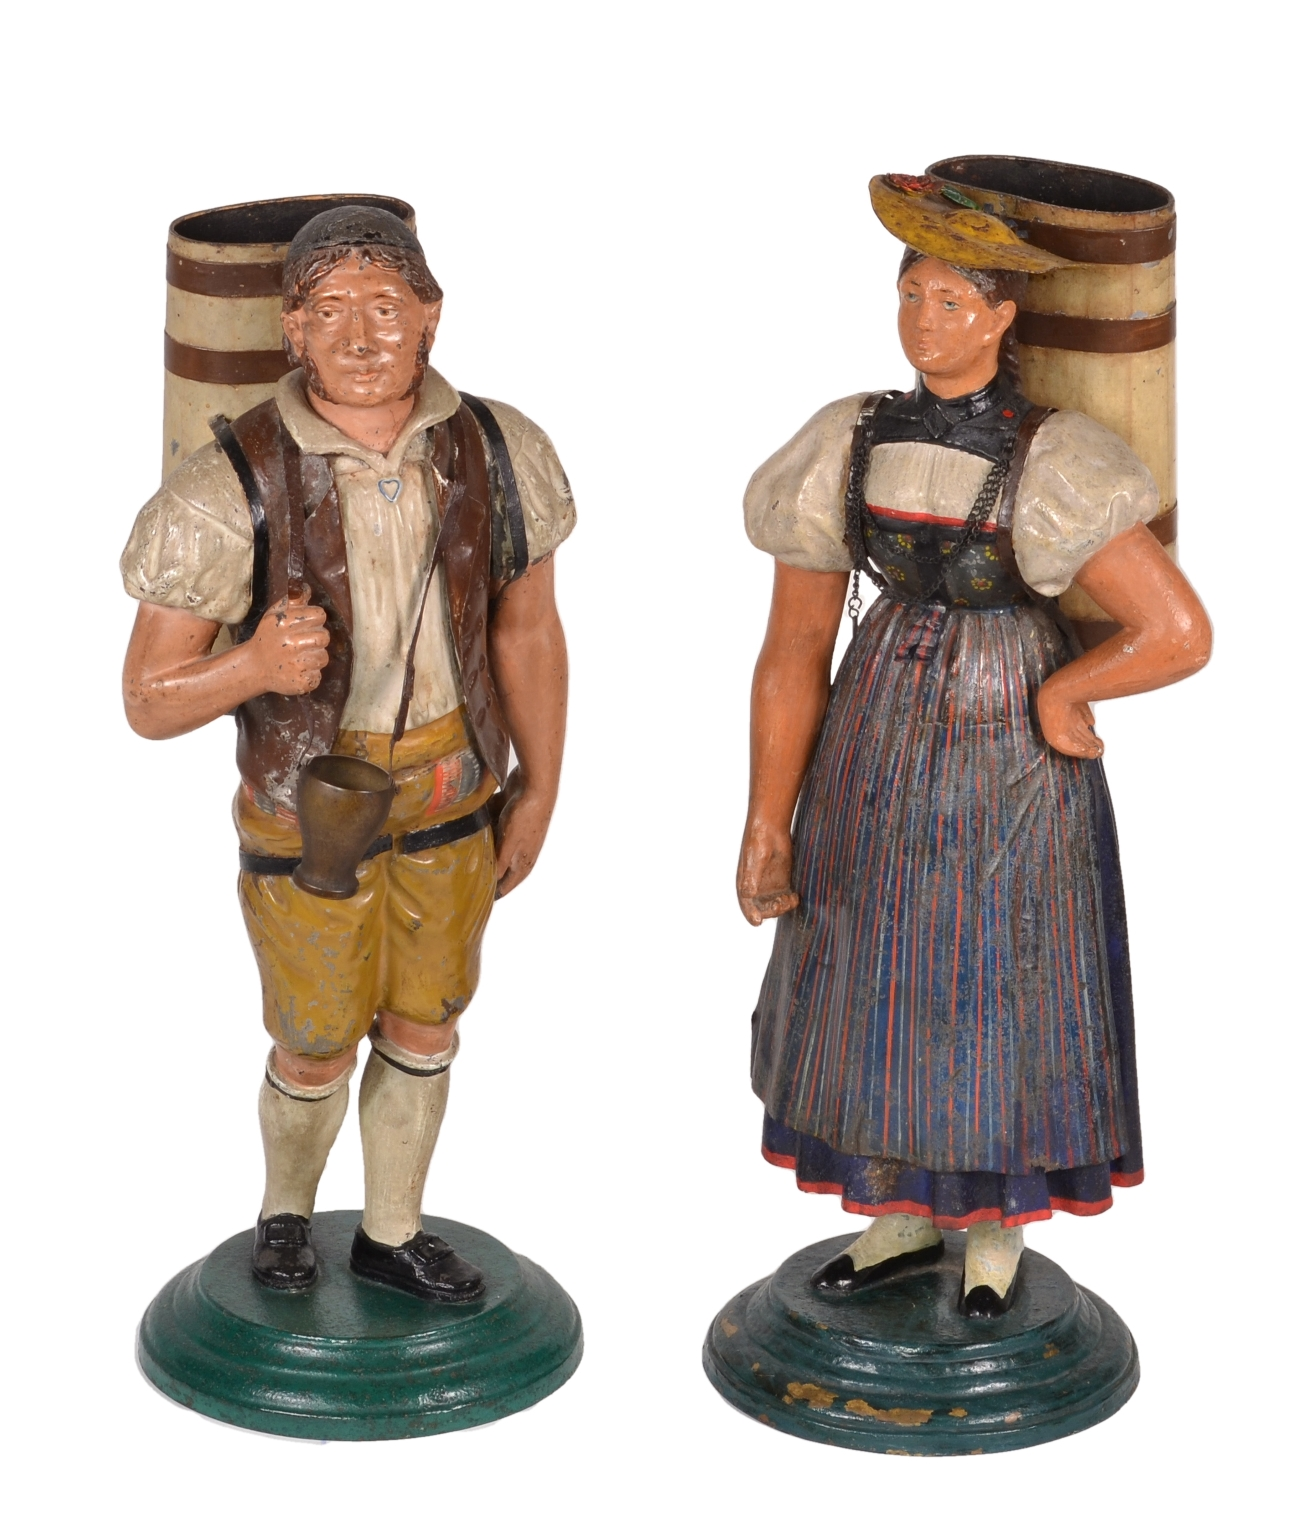 View 1: Pair of Tole Figures, c. 1820-40